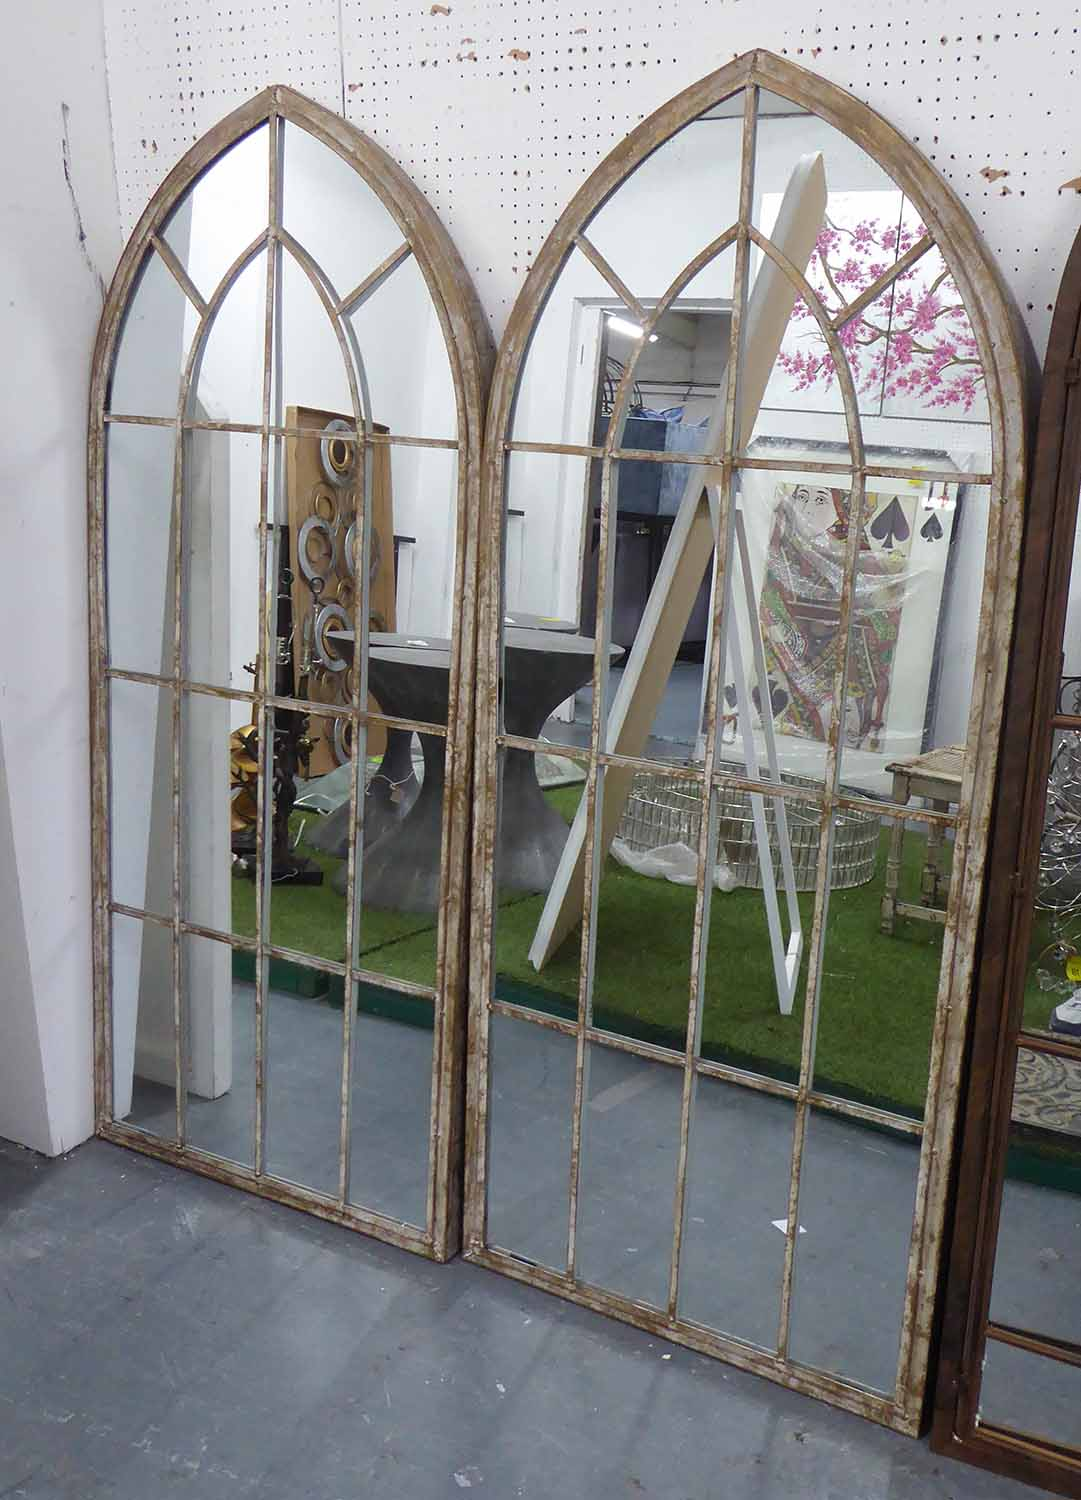 Lot 79 - ORANGERY MIRRORS, a pair, French provincial style, 160cm x 67cm.